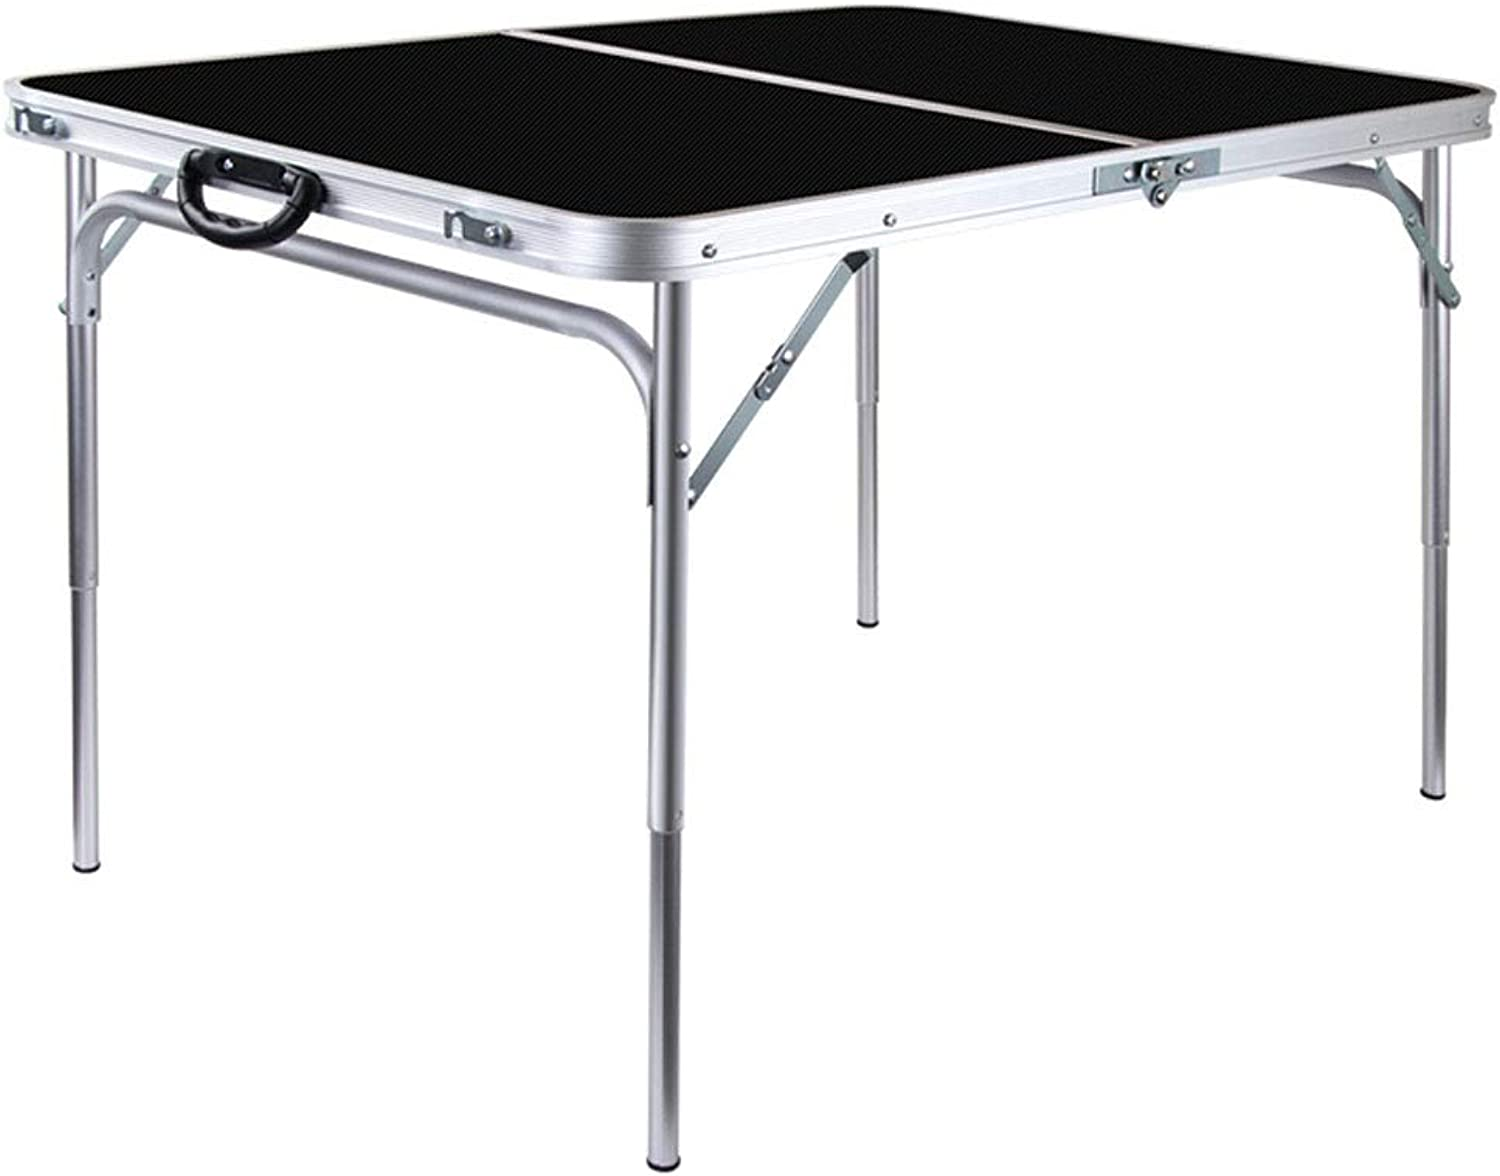 ZK Portable and Adjustable Hight,Fold-in-Half Portable Table 4 Foot,,Folding Table for Camping, Beach, Backyards, BBQ, Party and Picnic (color   Black)